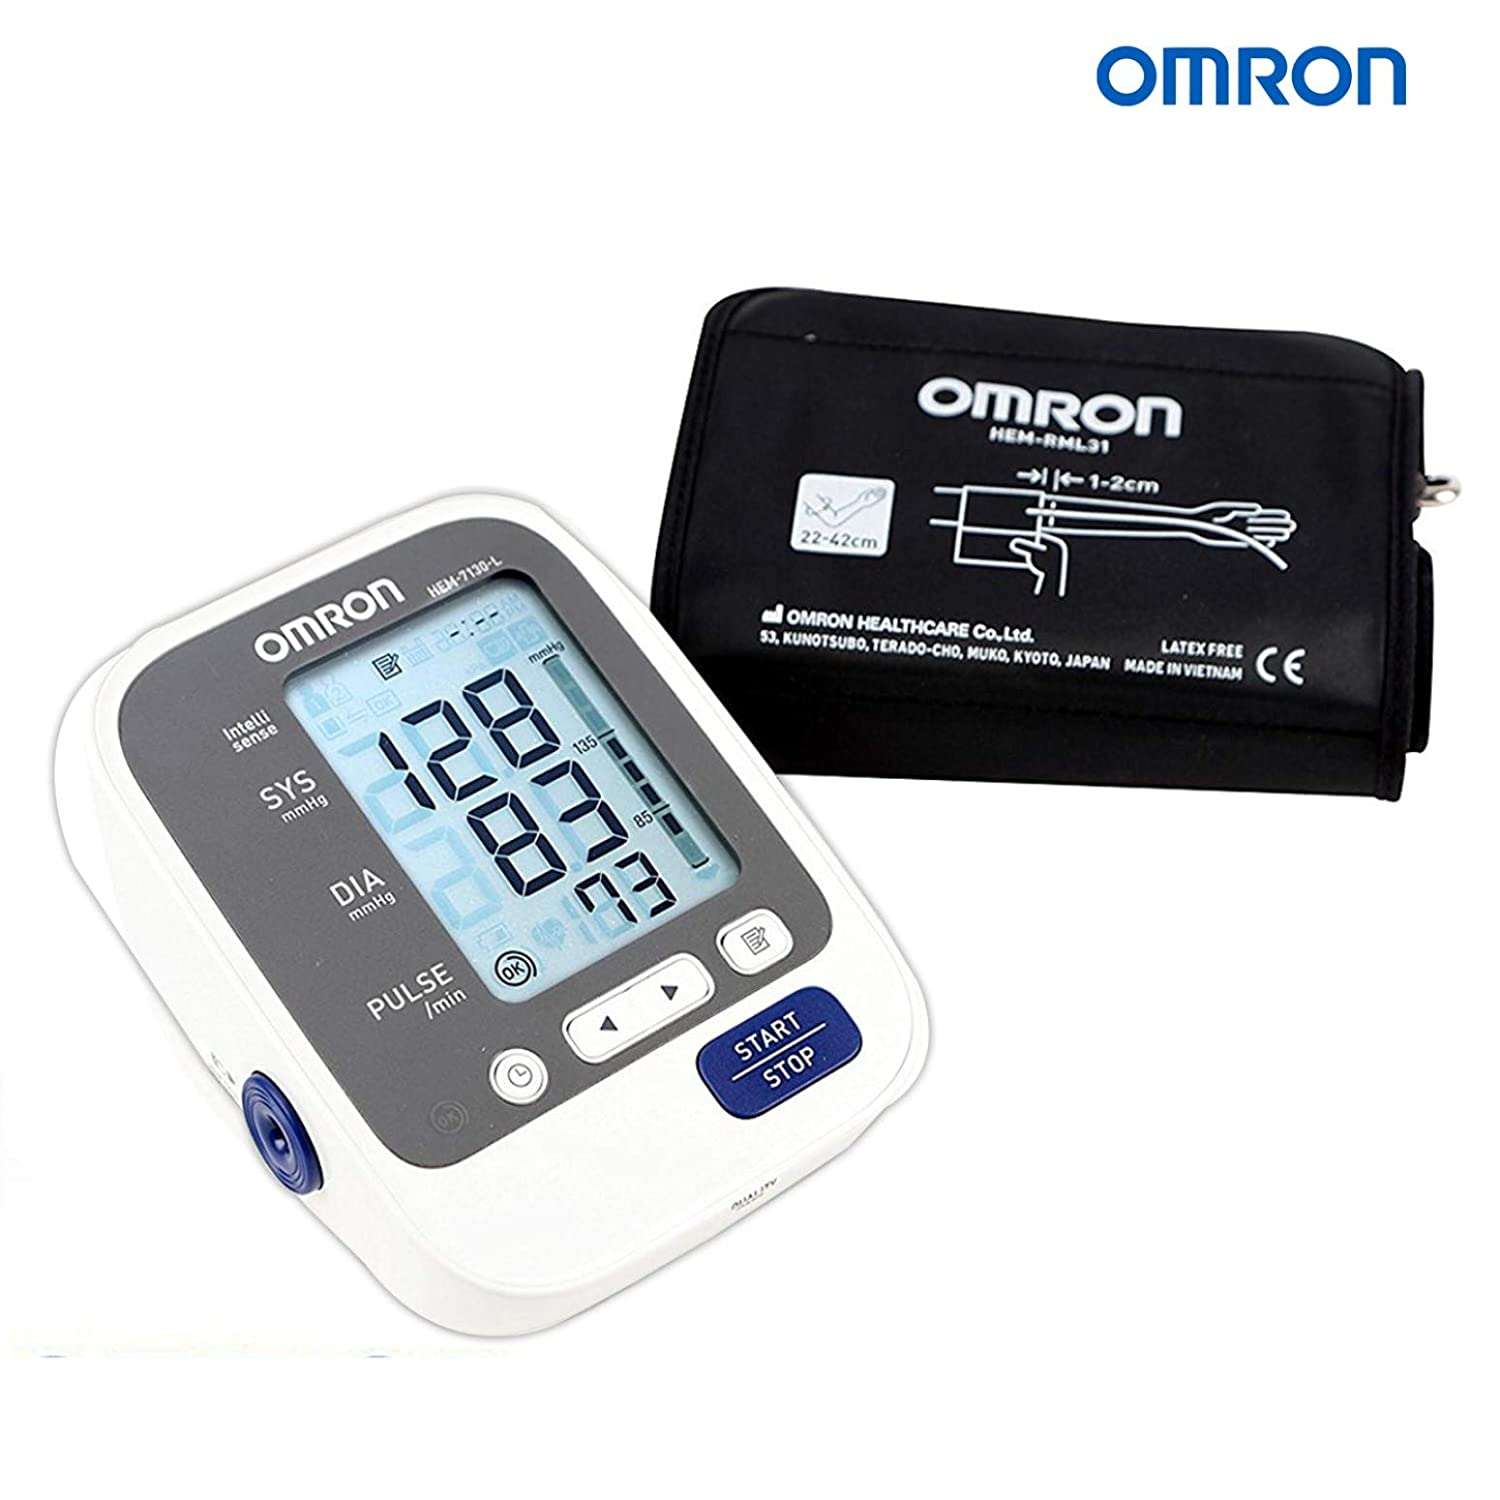 Omron HEM 7130L Fully Automatic Digital Blood Pressure Monitor